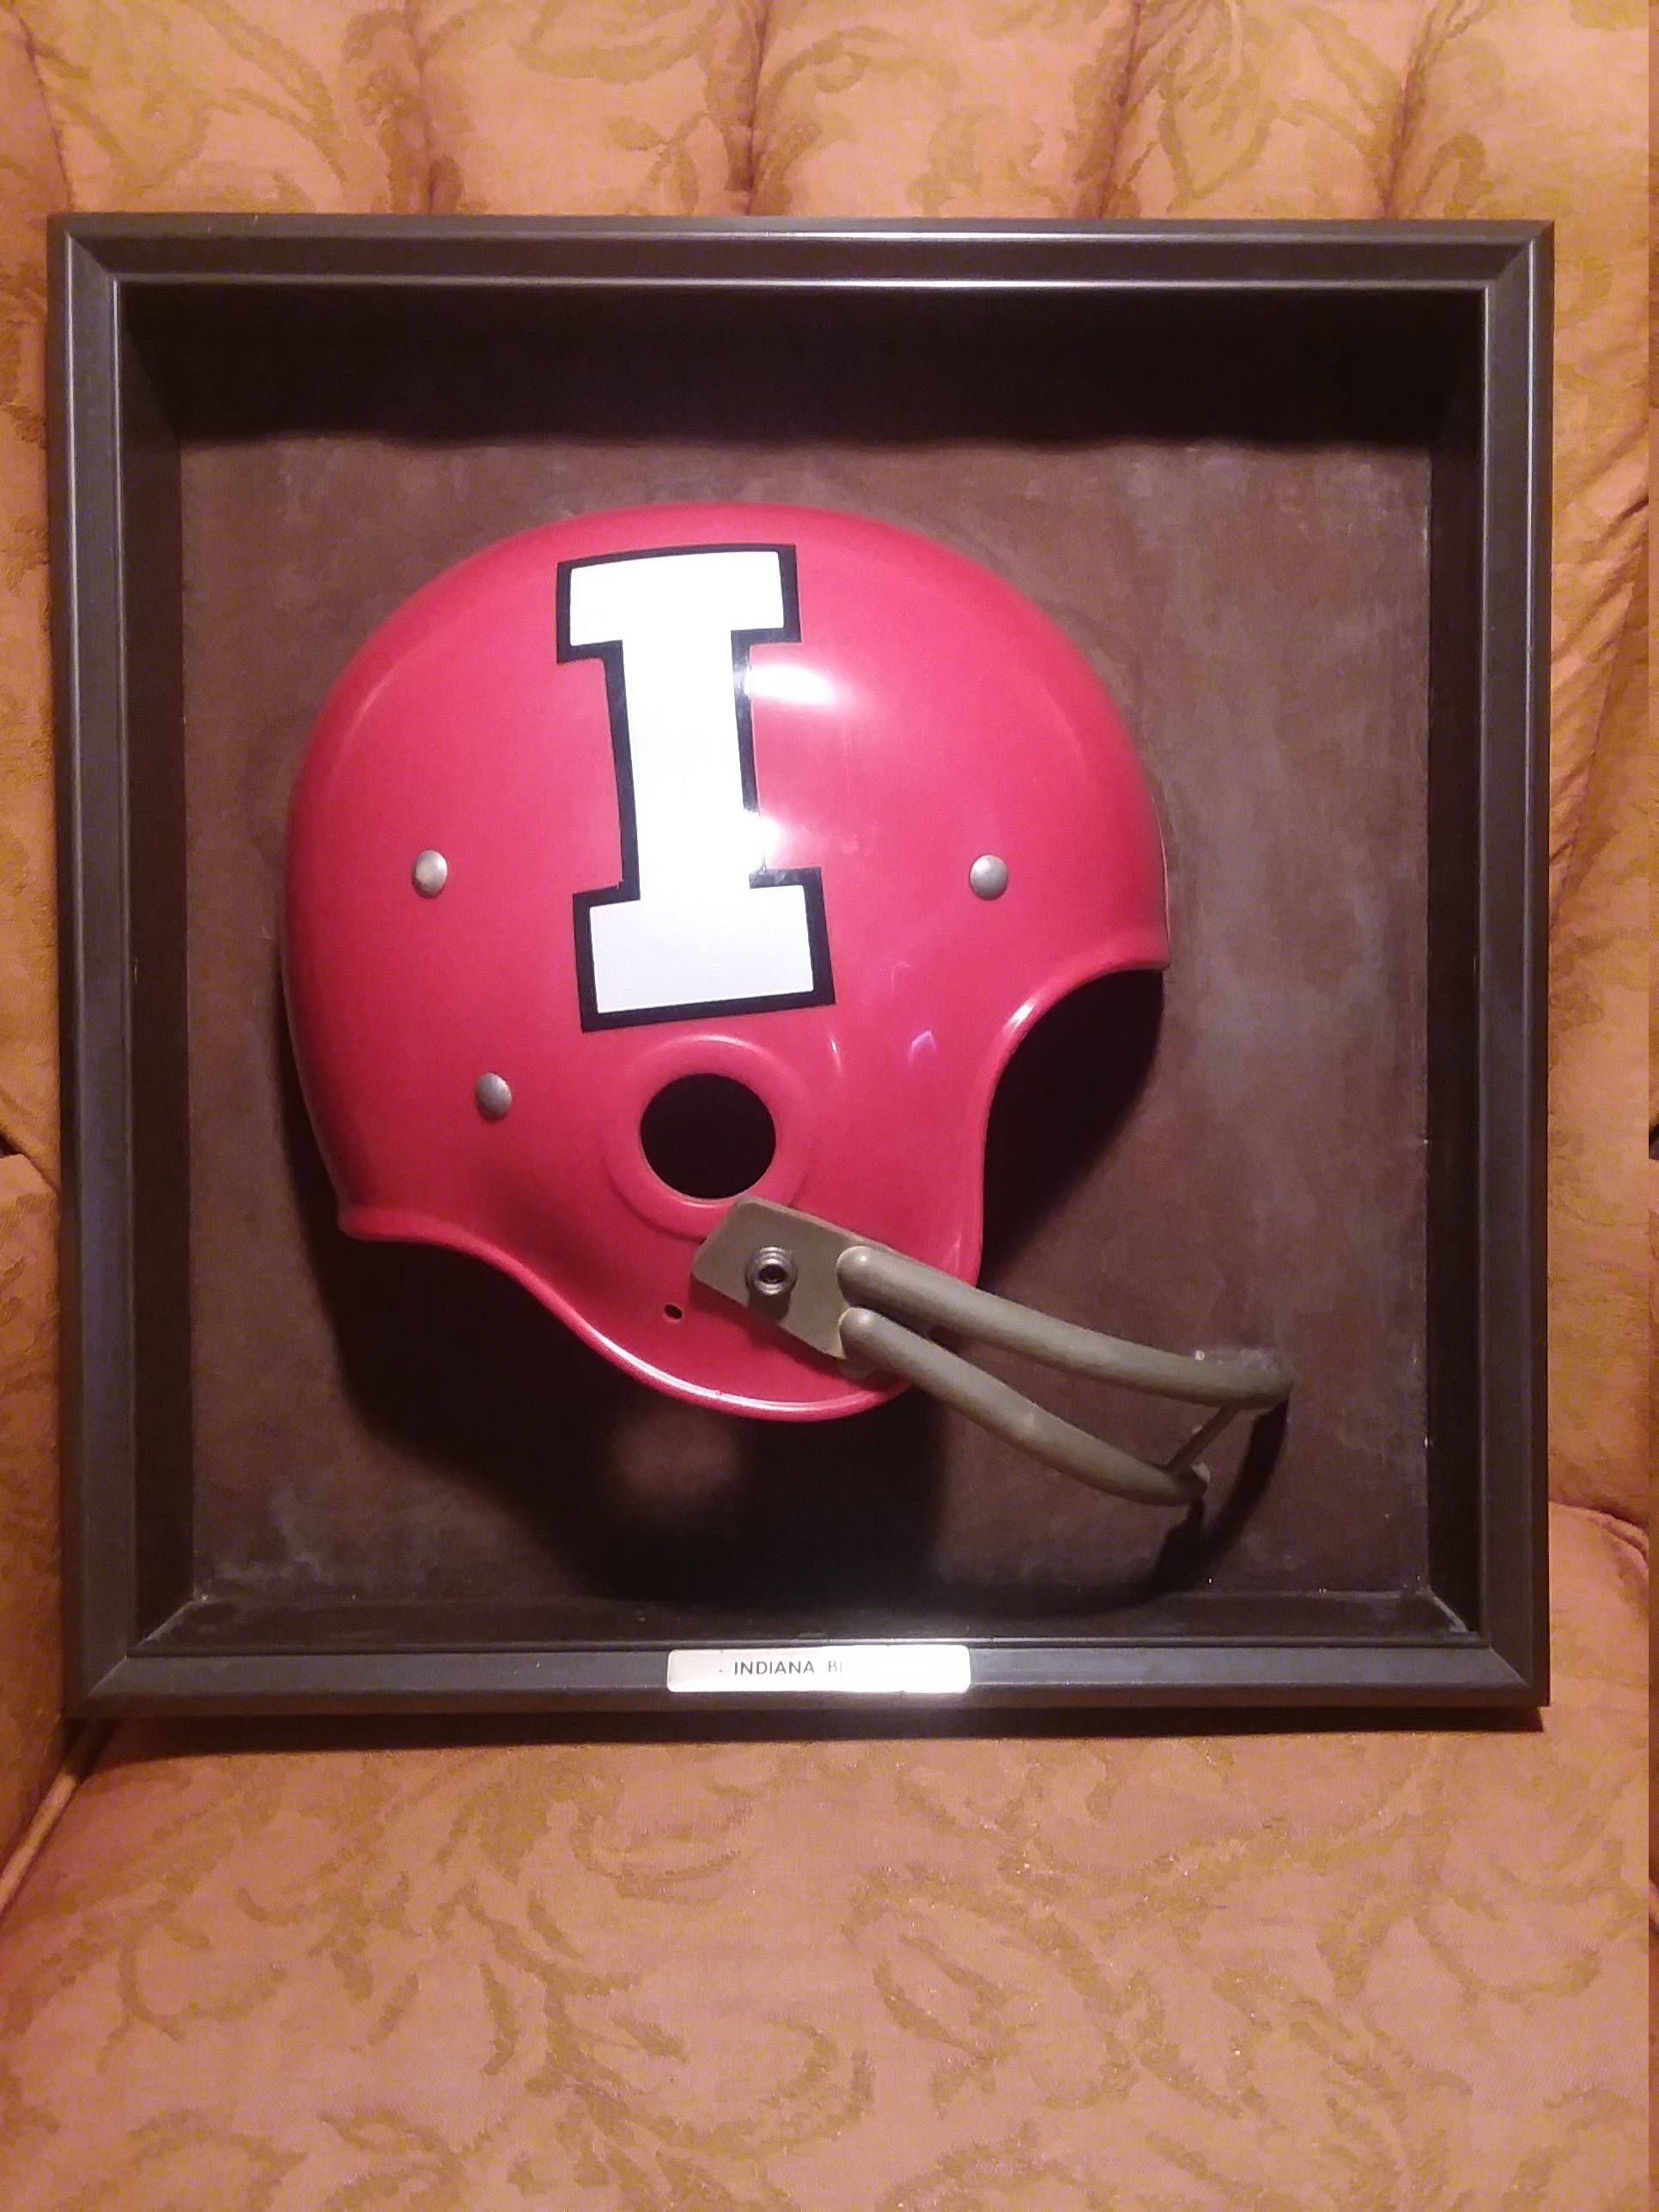 huge discount f900f 81061 70 s 80 s Indiana Hoosiers Football Helmet wall hanging  plaque office lawyer shop University IU basketball Bob Knight Lee  Corso prop NCAA by finleysvintage ...